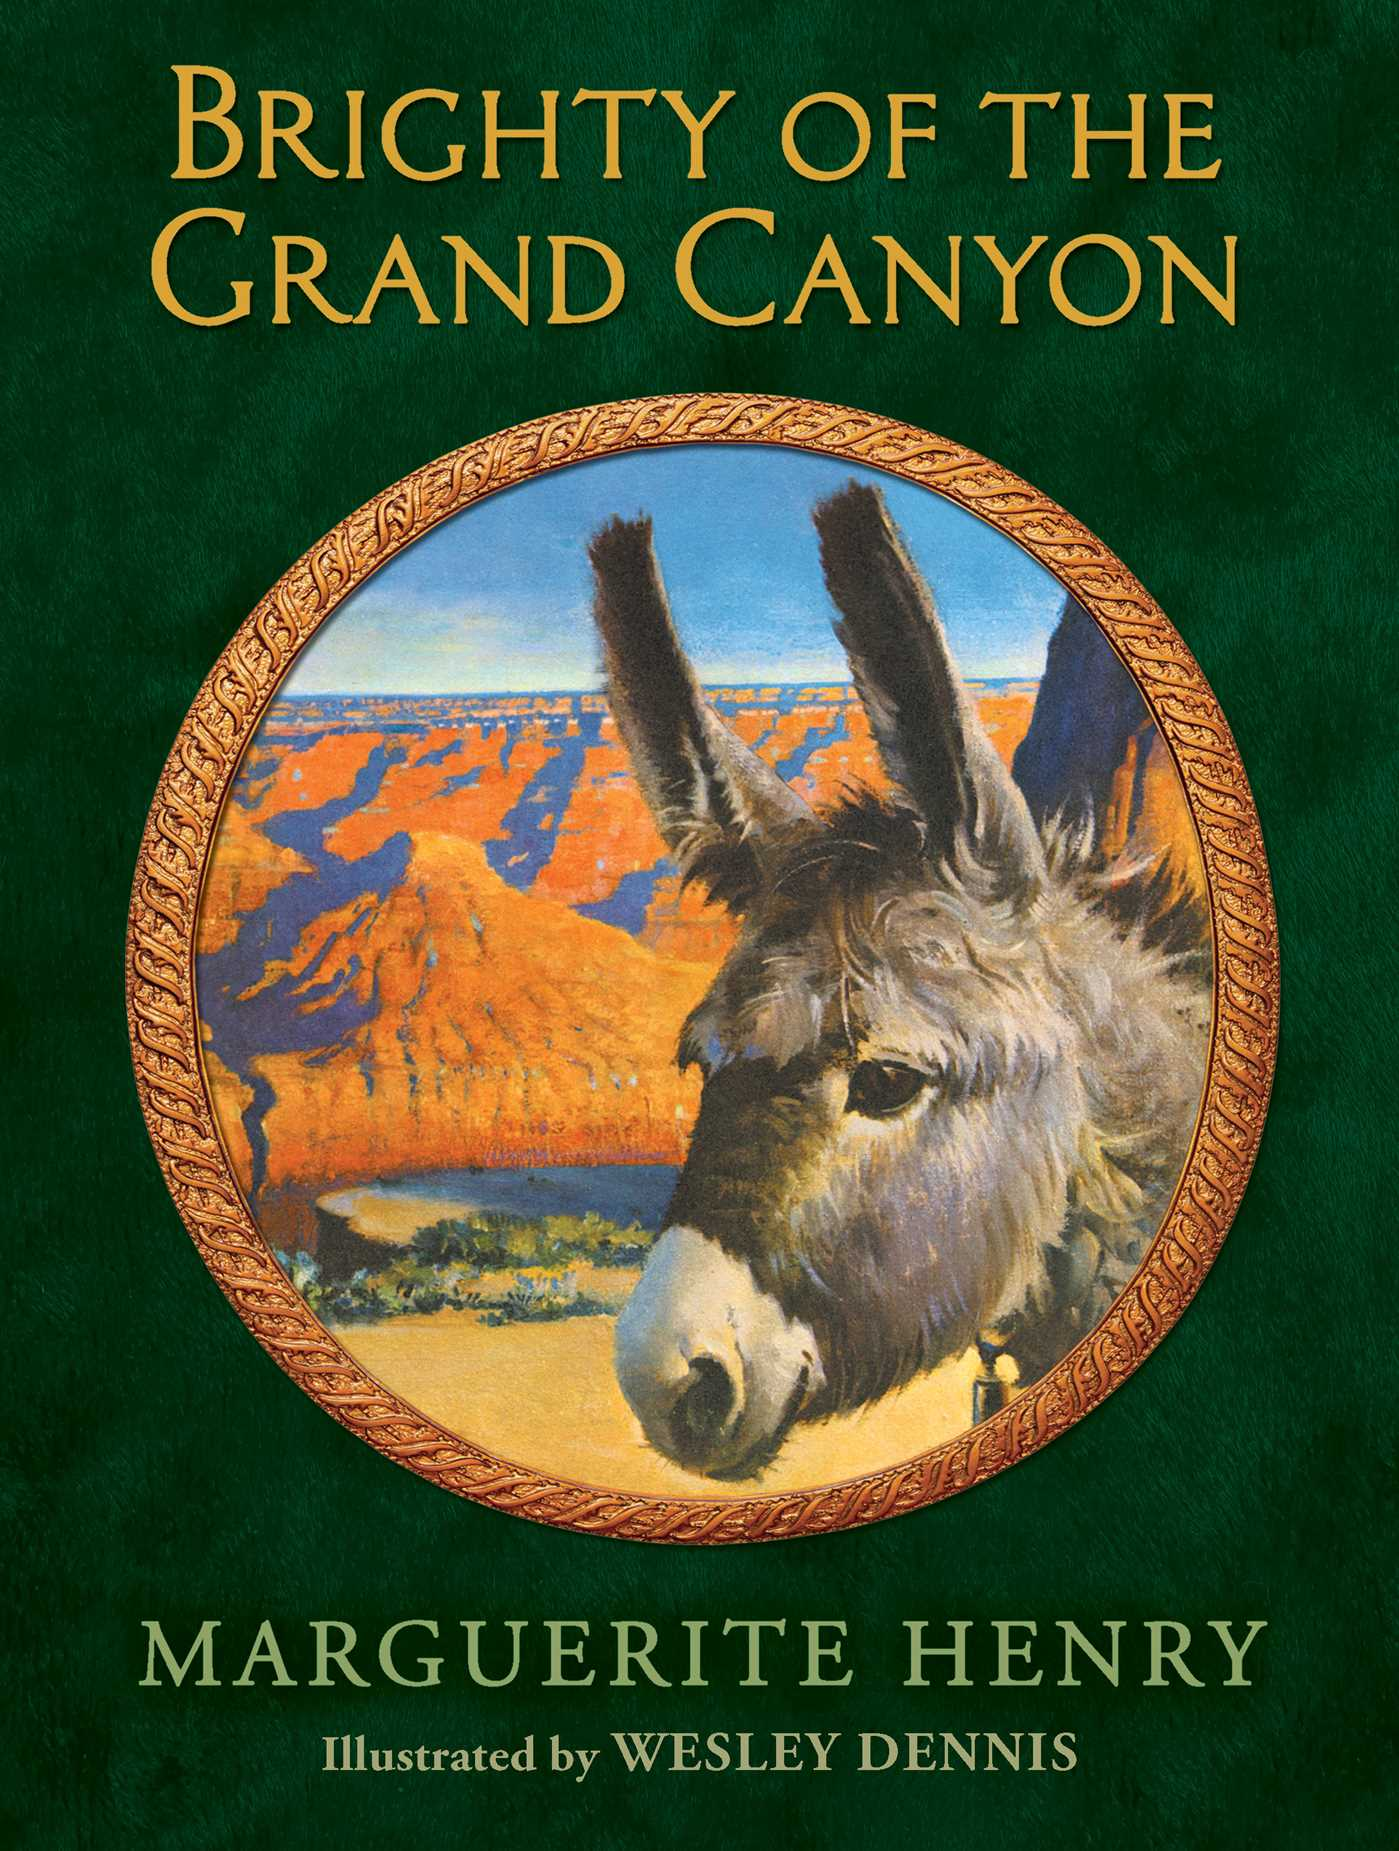 Brighty of the grand canyon 9781481415828 hr